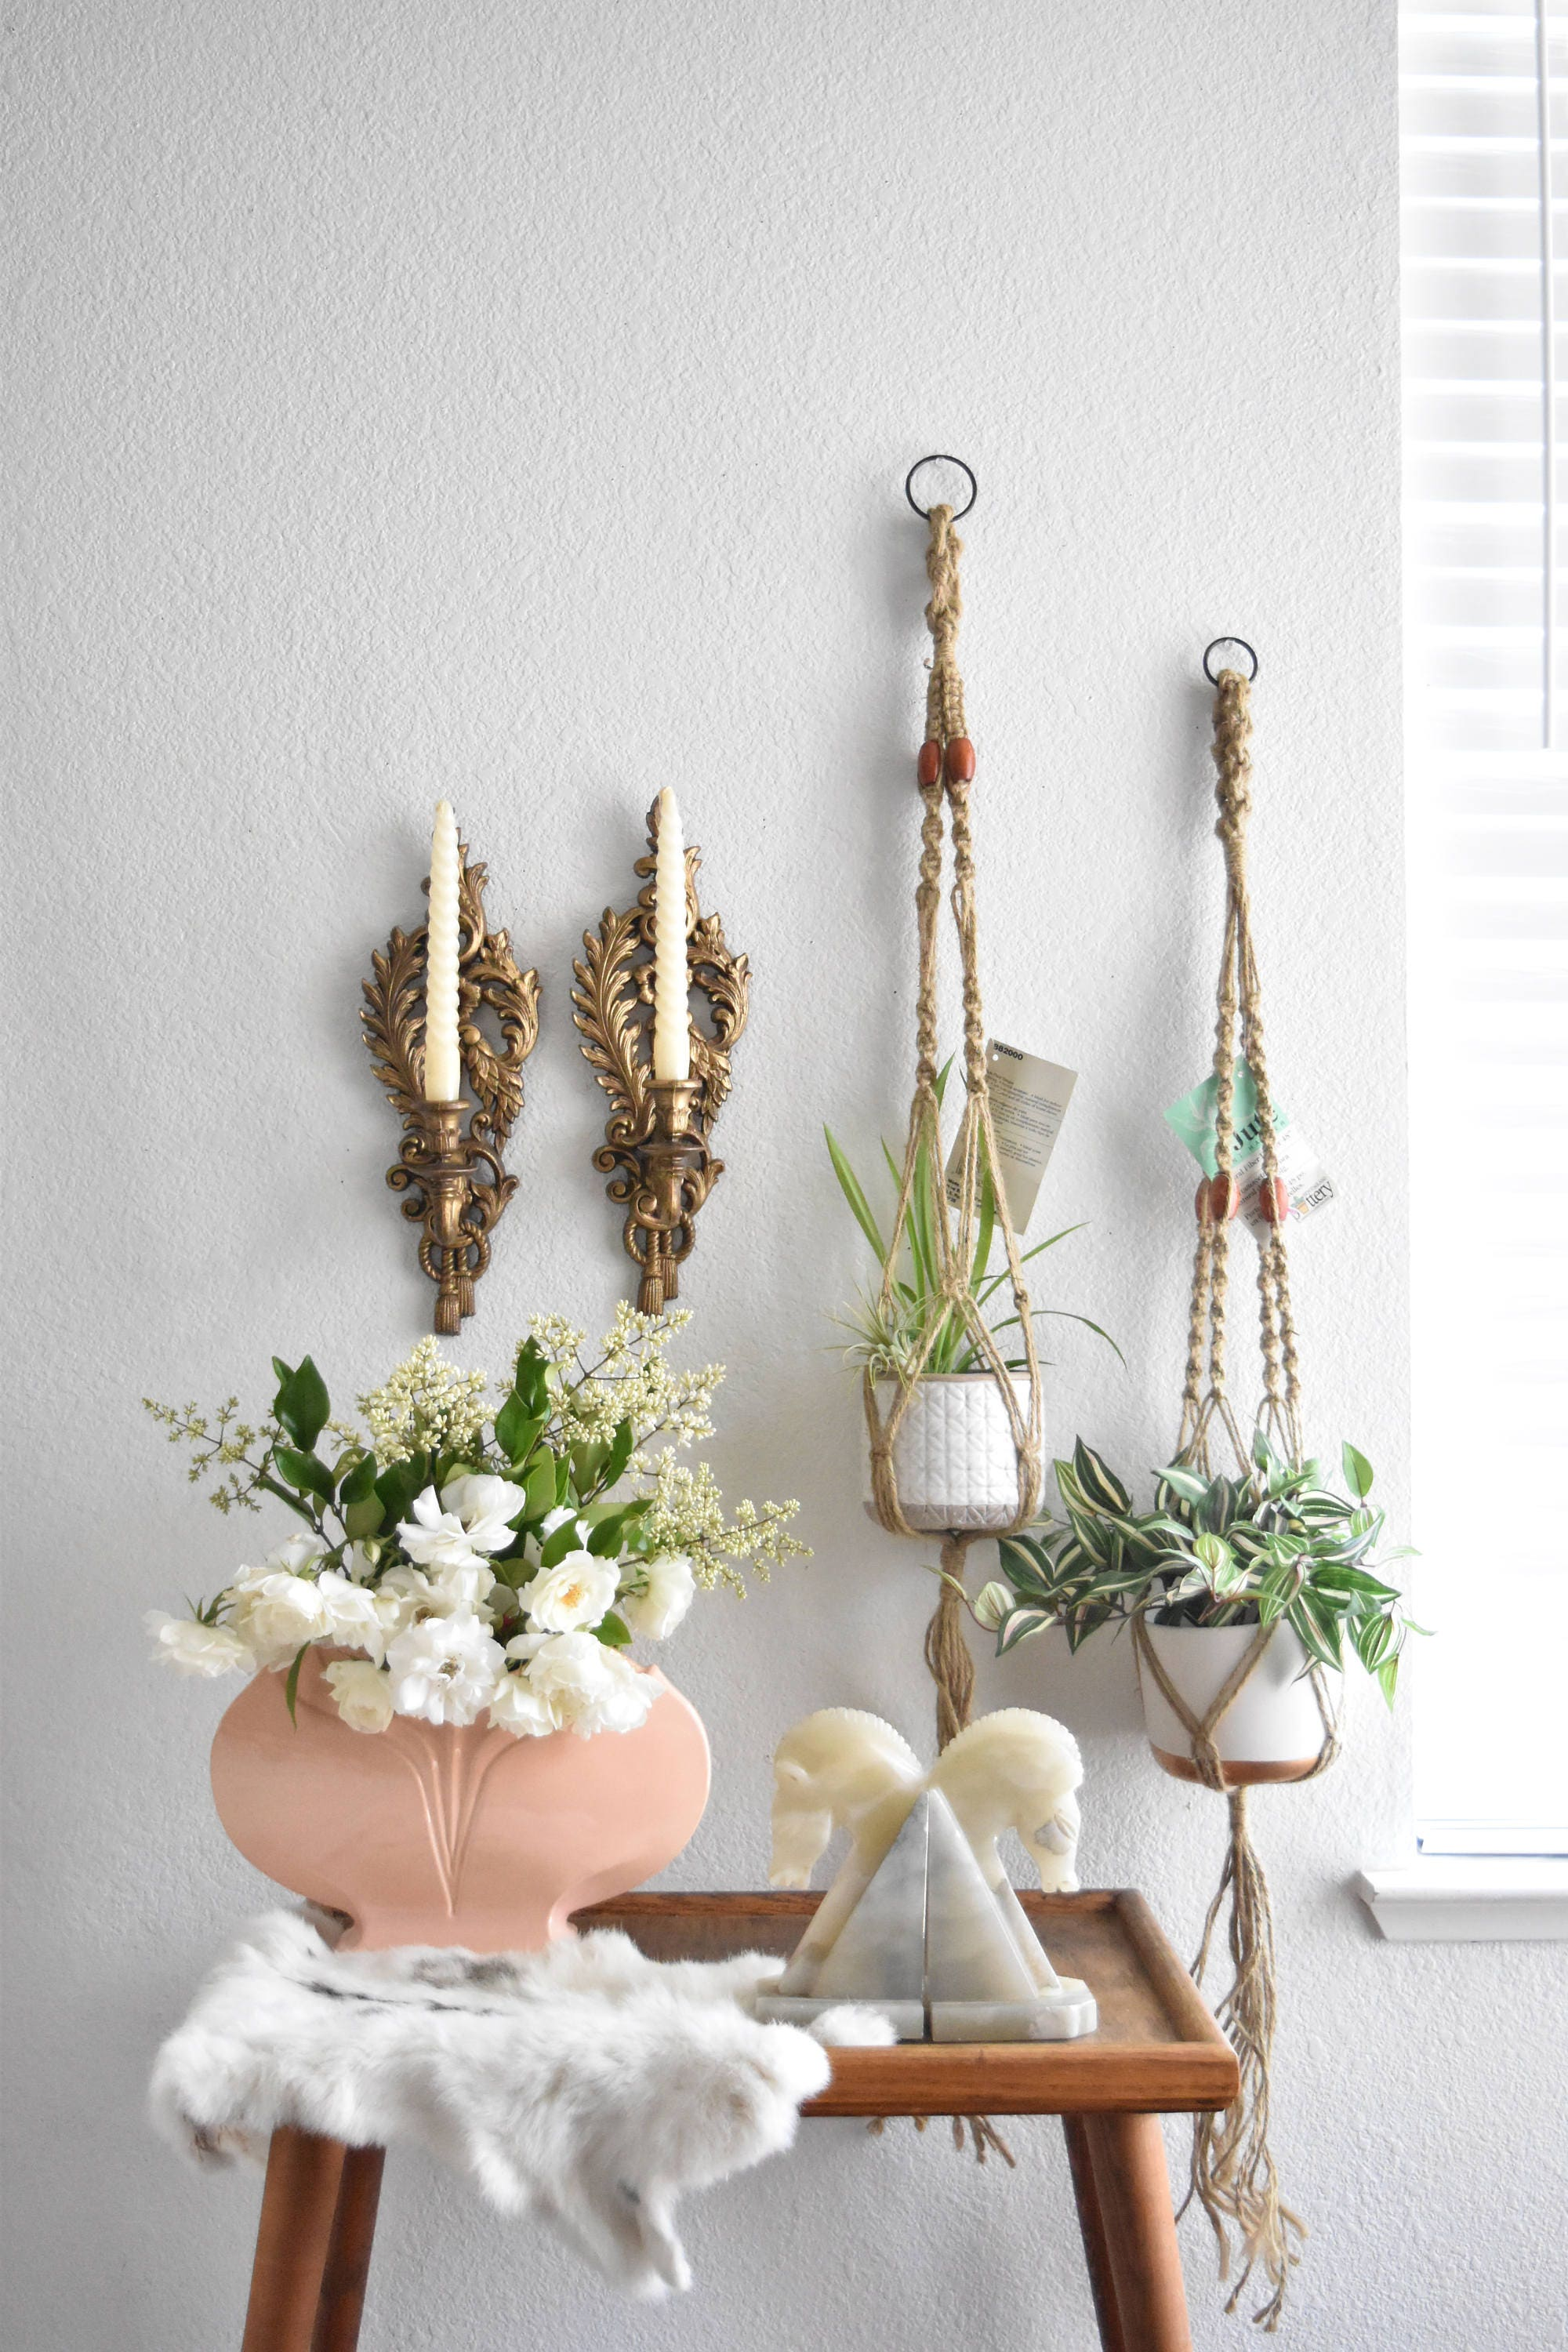 Vintage Jute Macrame Planter Hanger Indoor Plant Holder